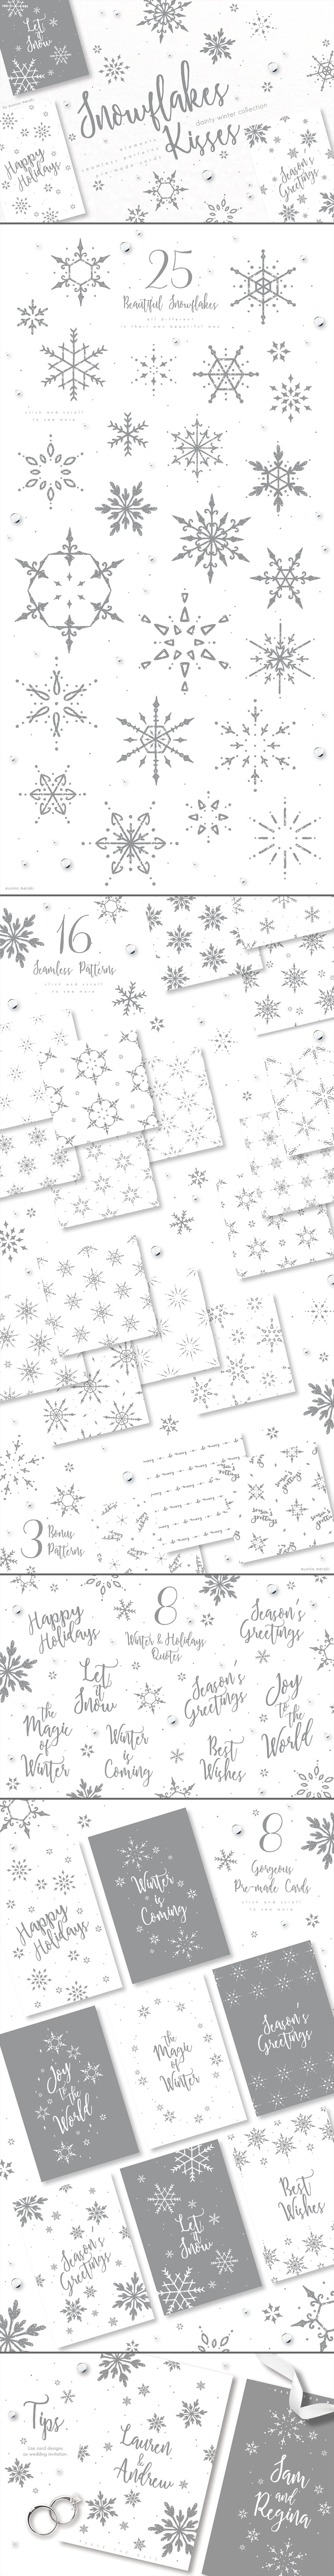 Snowflakes Kisses - 60 items for $4 - Full Image